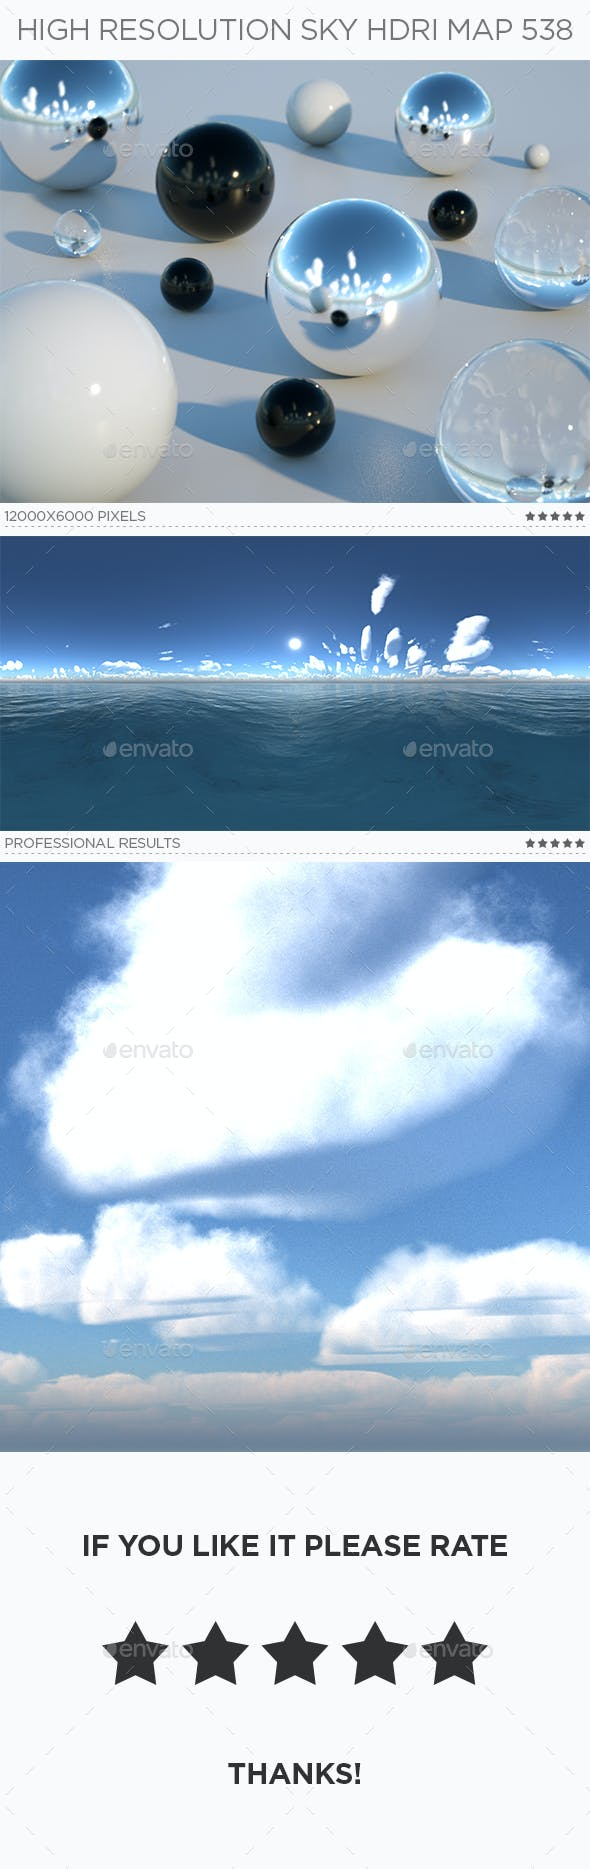 High Resolution Sky HDRi Map 538 - 3DOcean Item for Sale